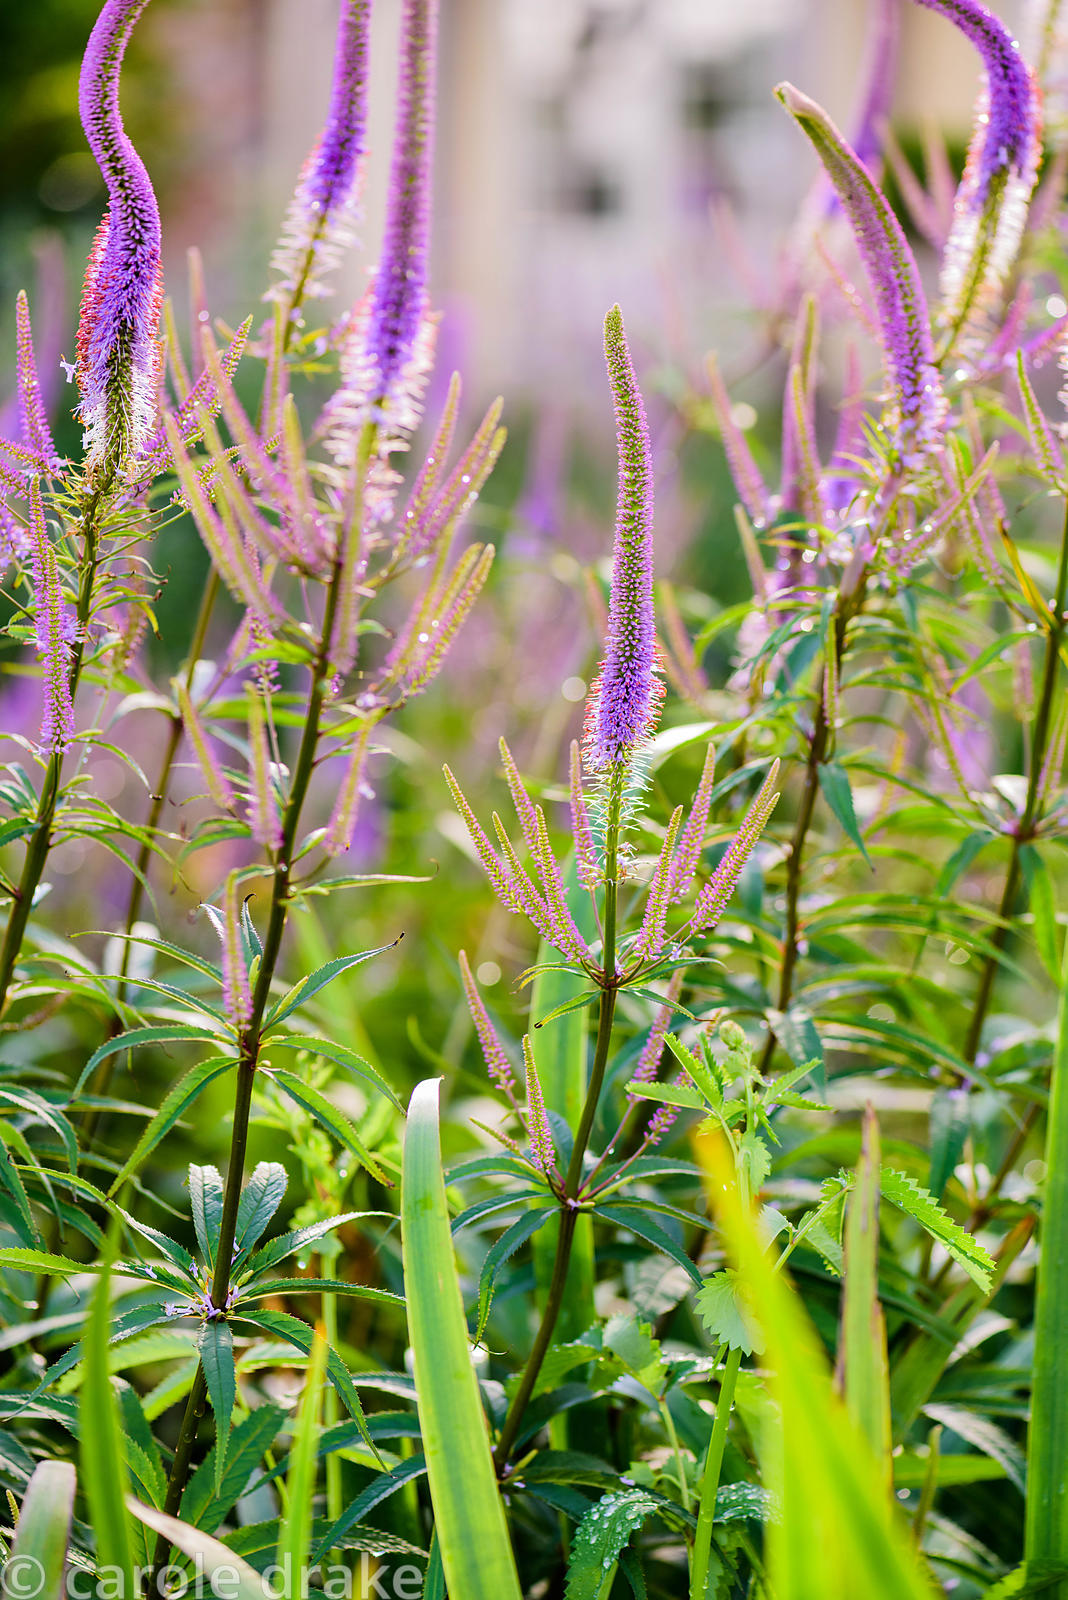 Veronicastrum virginicum 'Fascination'. The Yeo Valley Organic Garden, Blagdon, Somerset